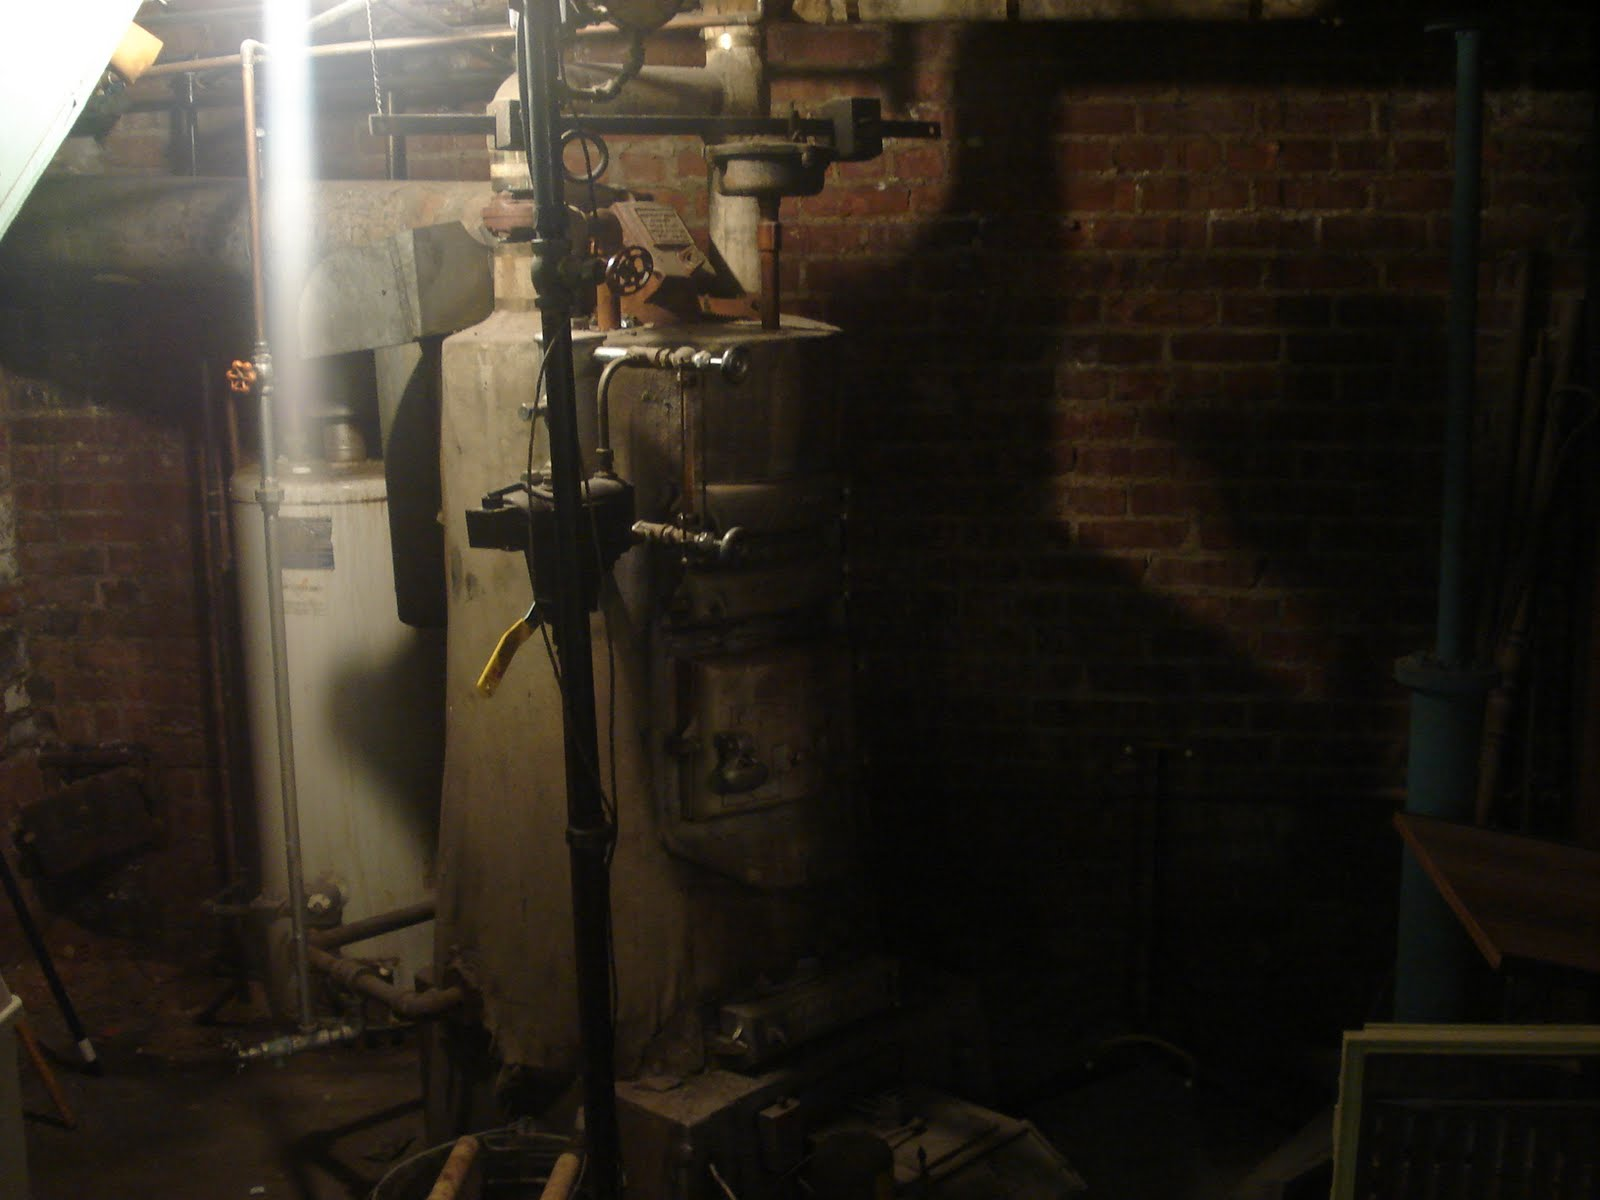 Dark Creepy Basement. This Is The Boiler In Dark Creepy Basement Of Shop  Contraption Scares